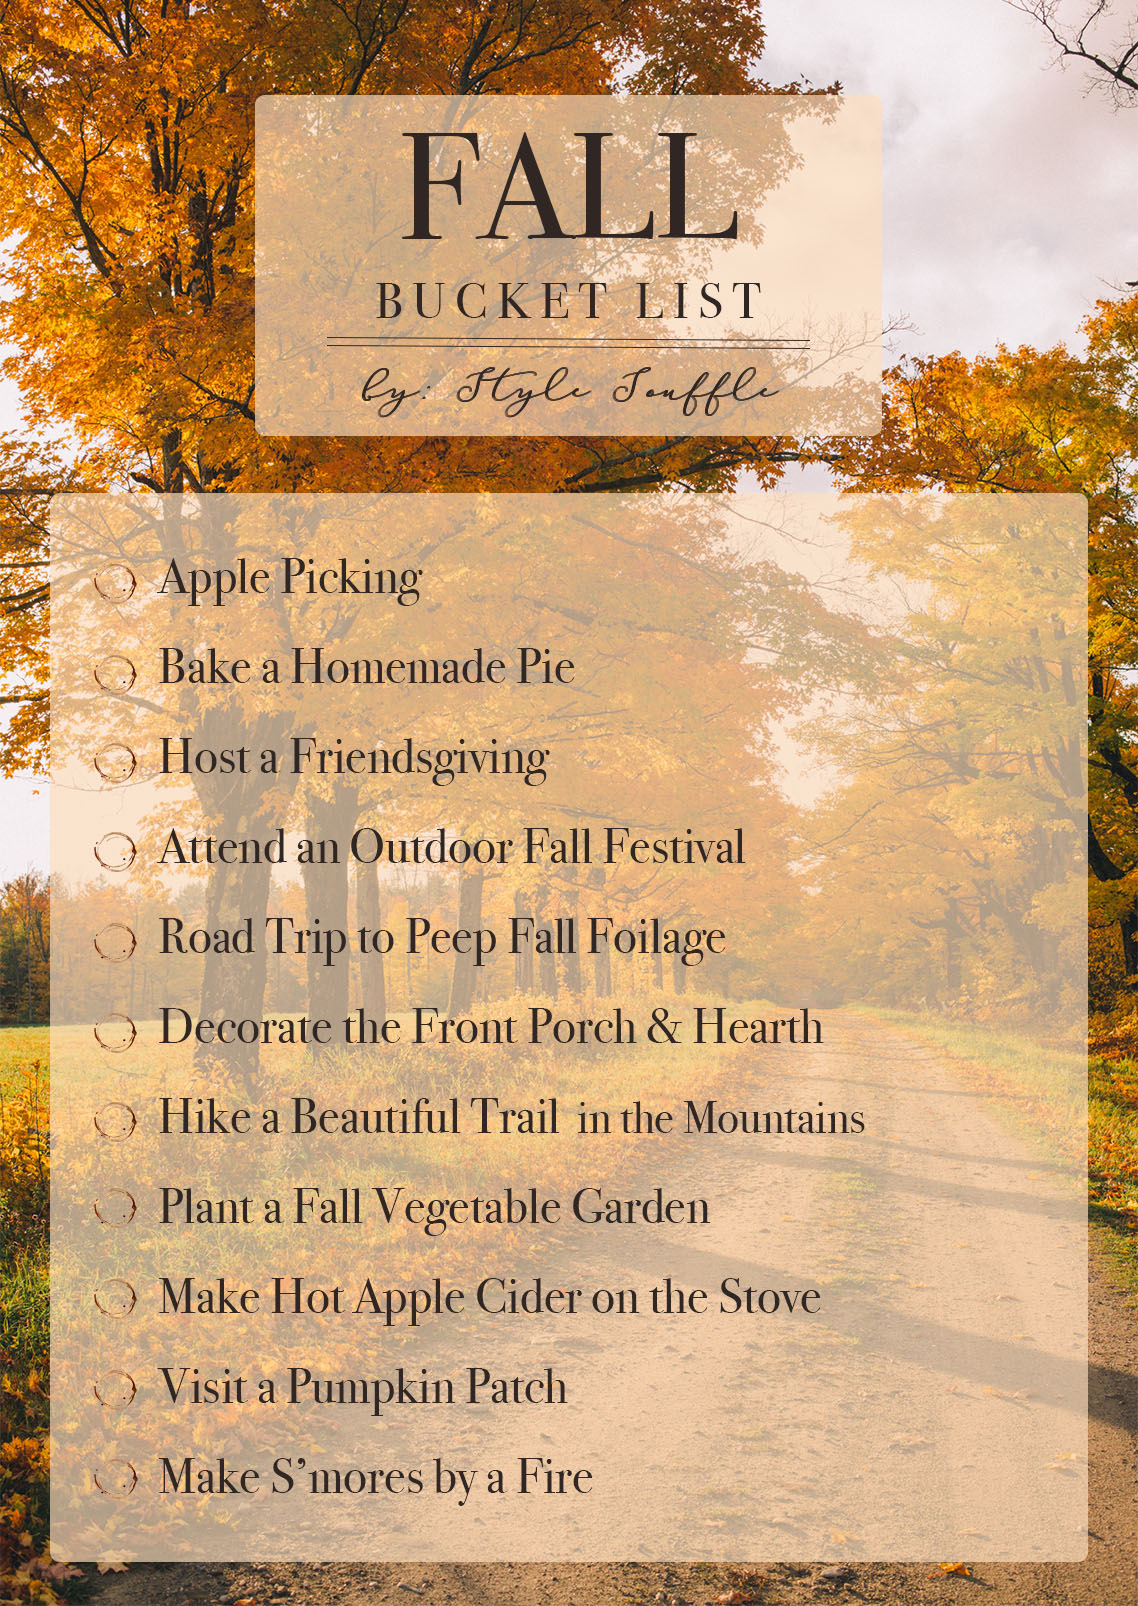 Fall Bucket List 2018